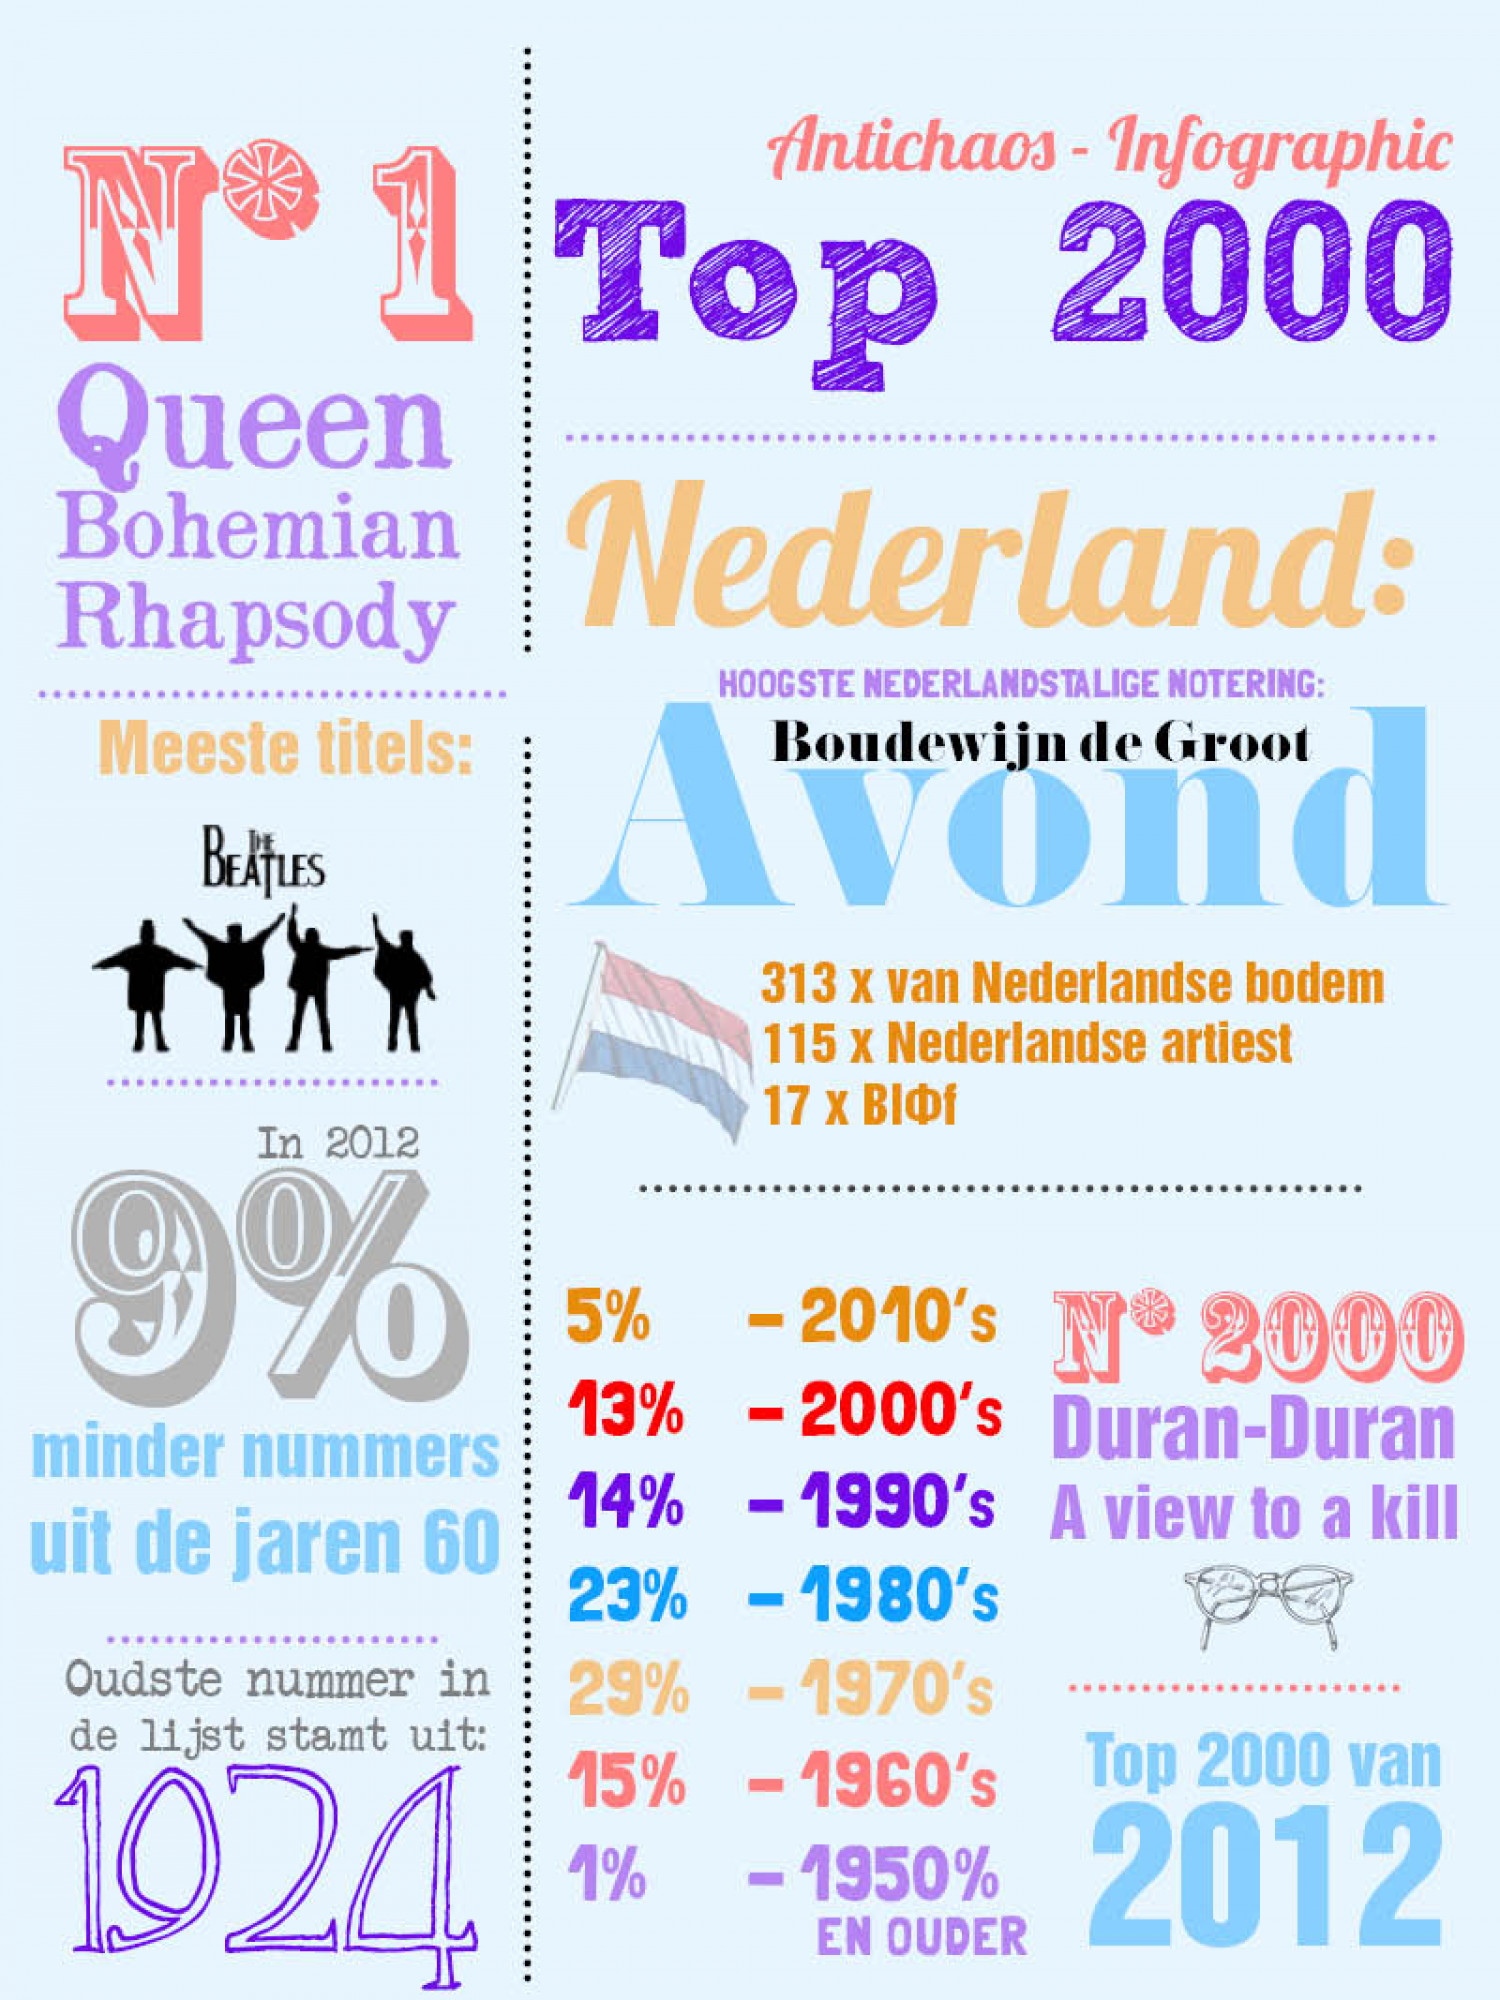 Top2000 Infographic